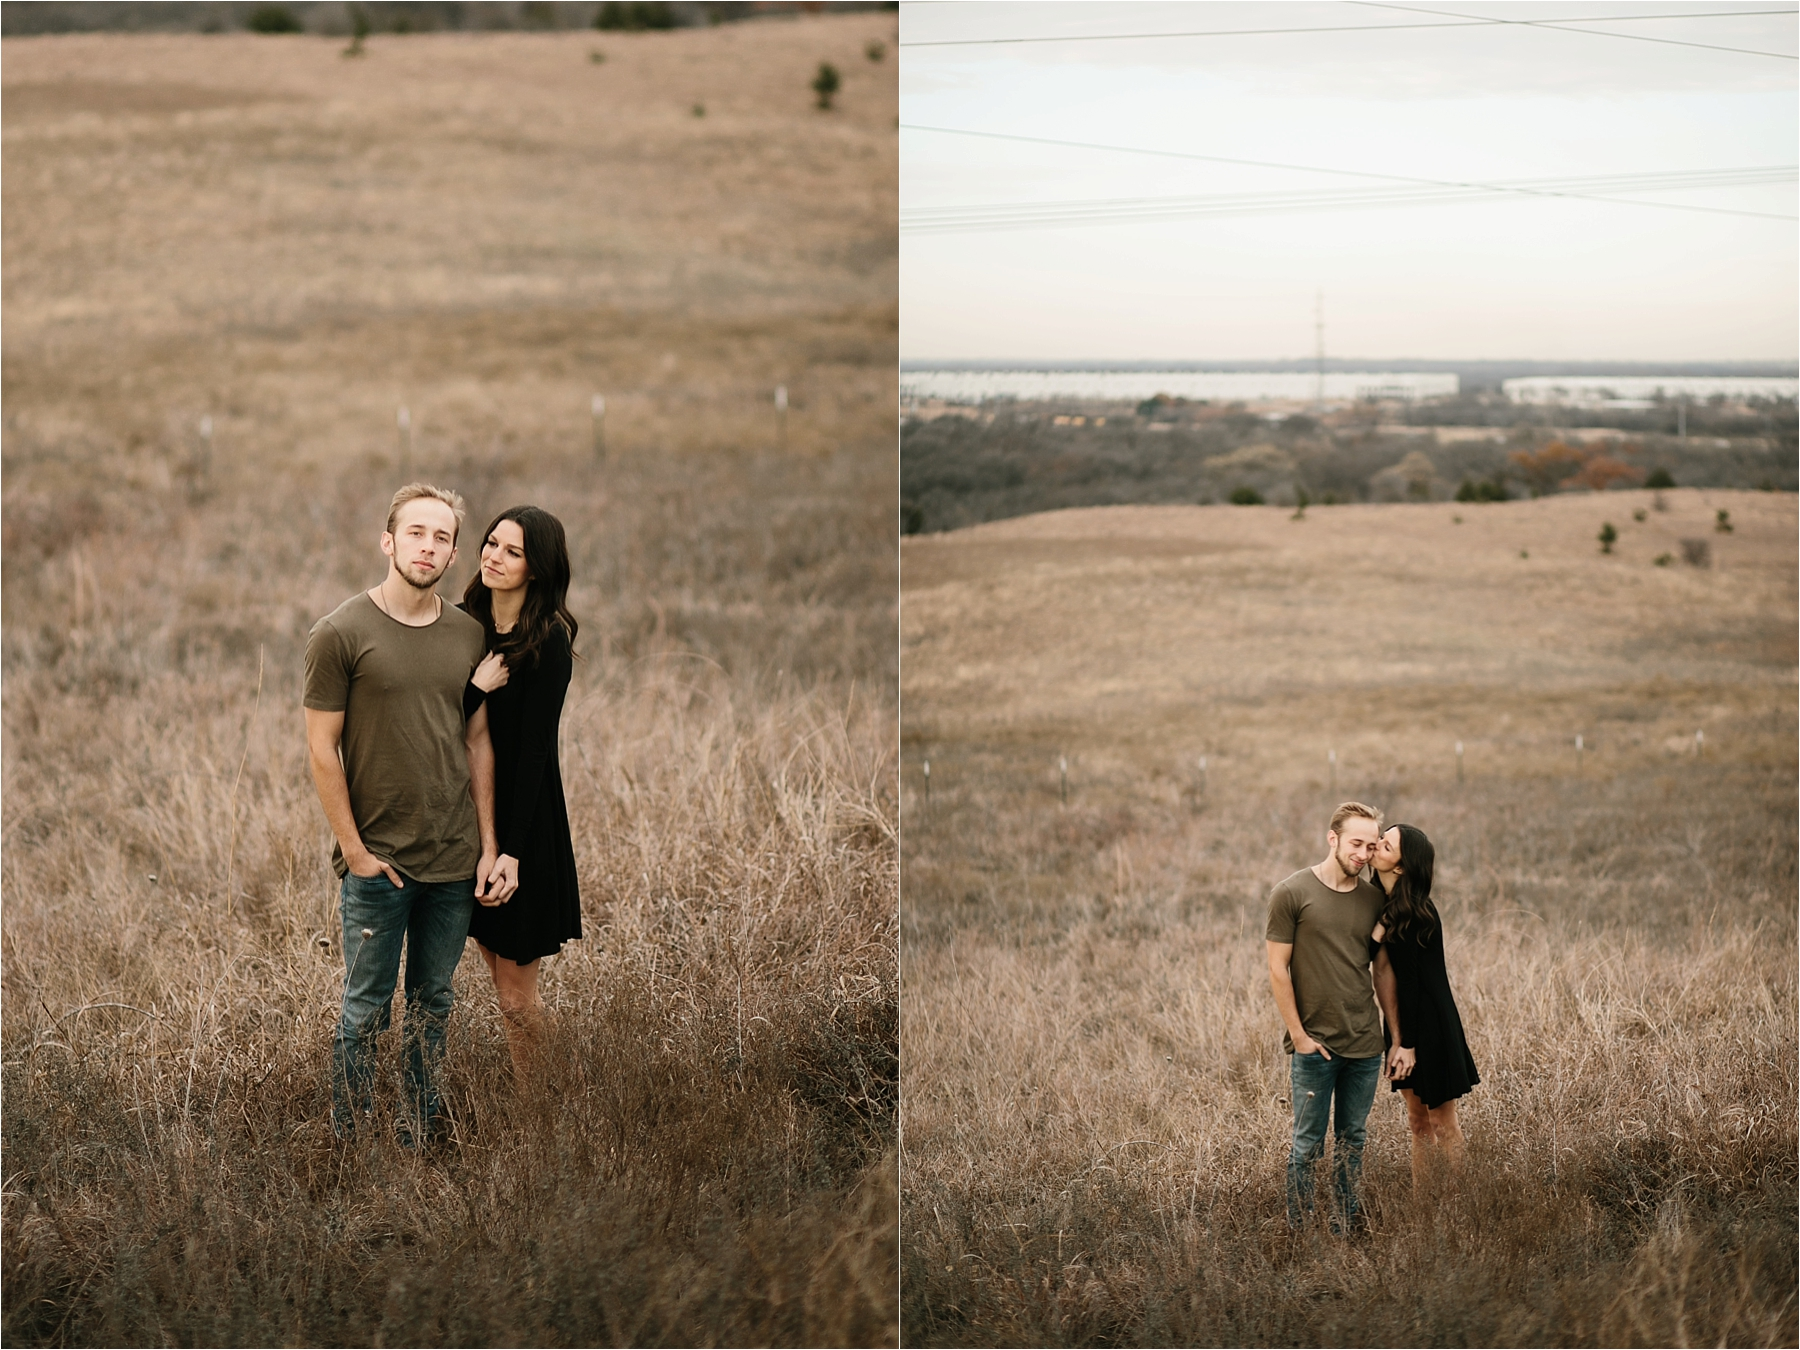 Trey + Phoebe __ a playful, intimate engagement session with dark_neutral outfit inspiration by North Texas Wedding Photographer Rachel Meagan Photography __ 03